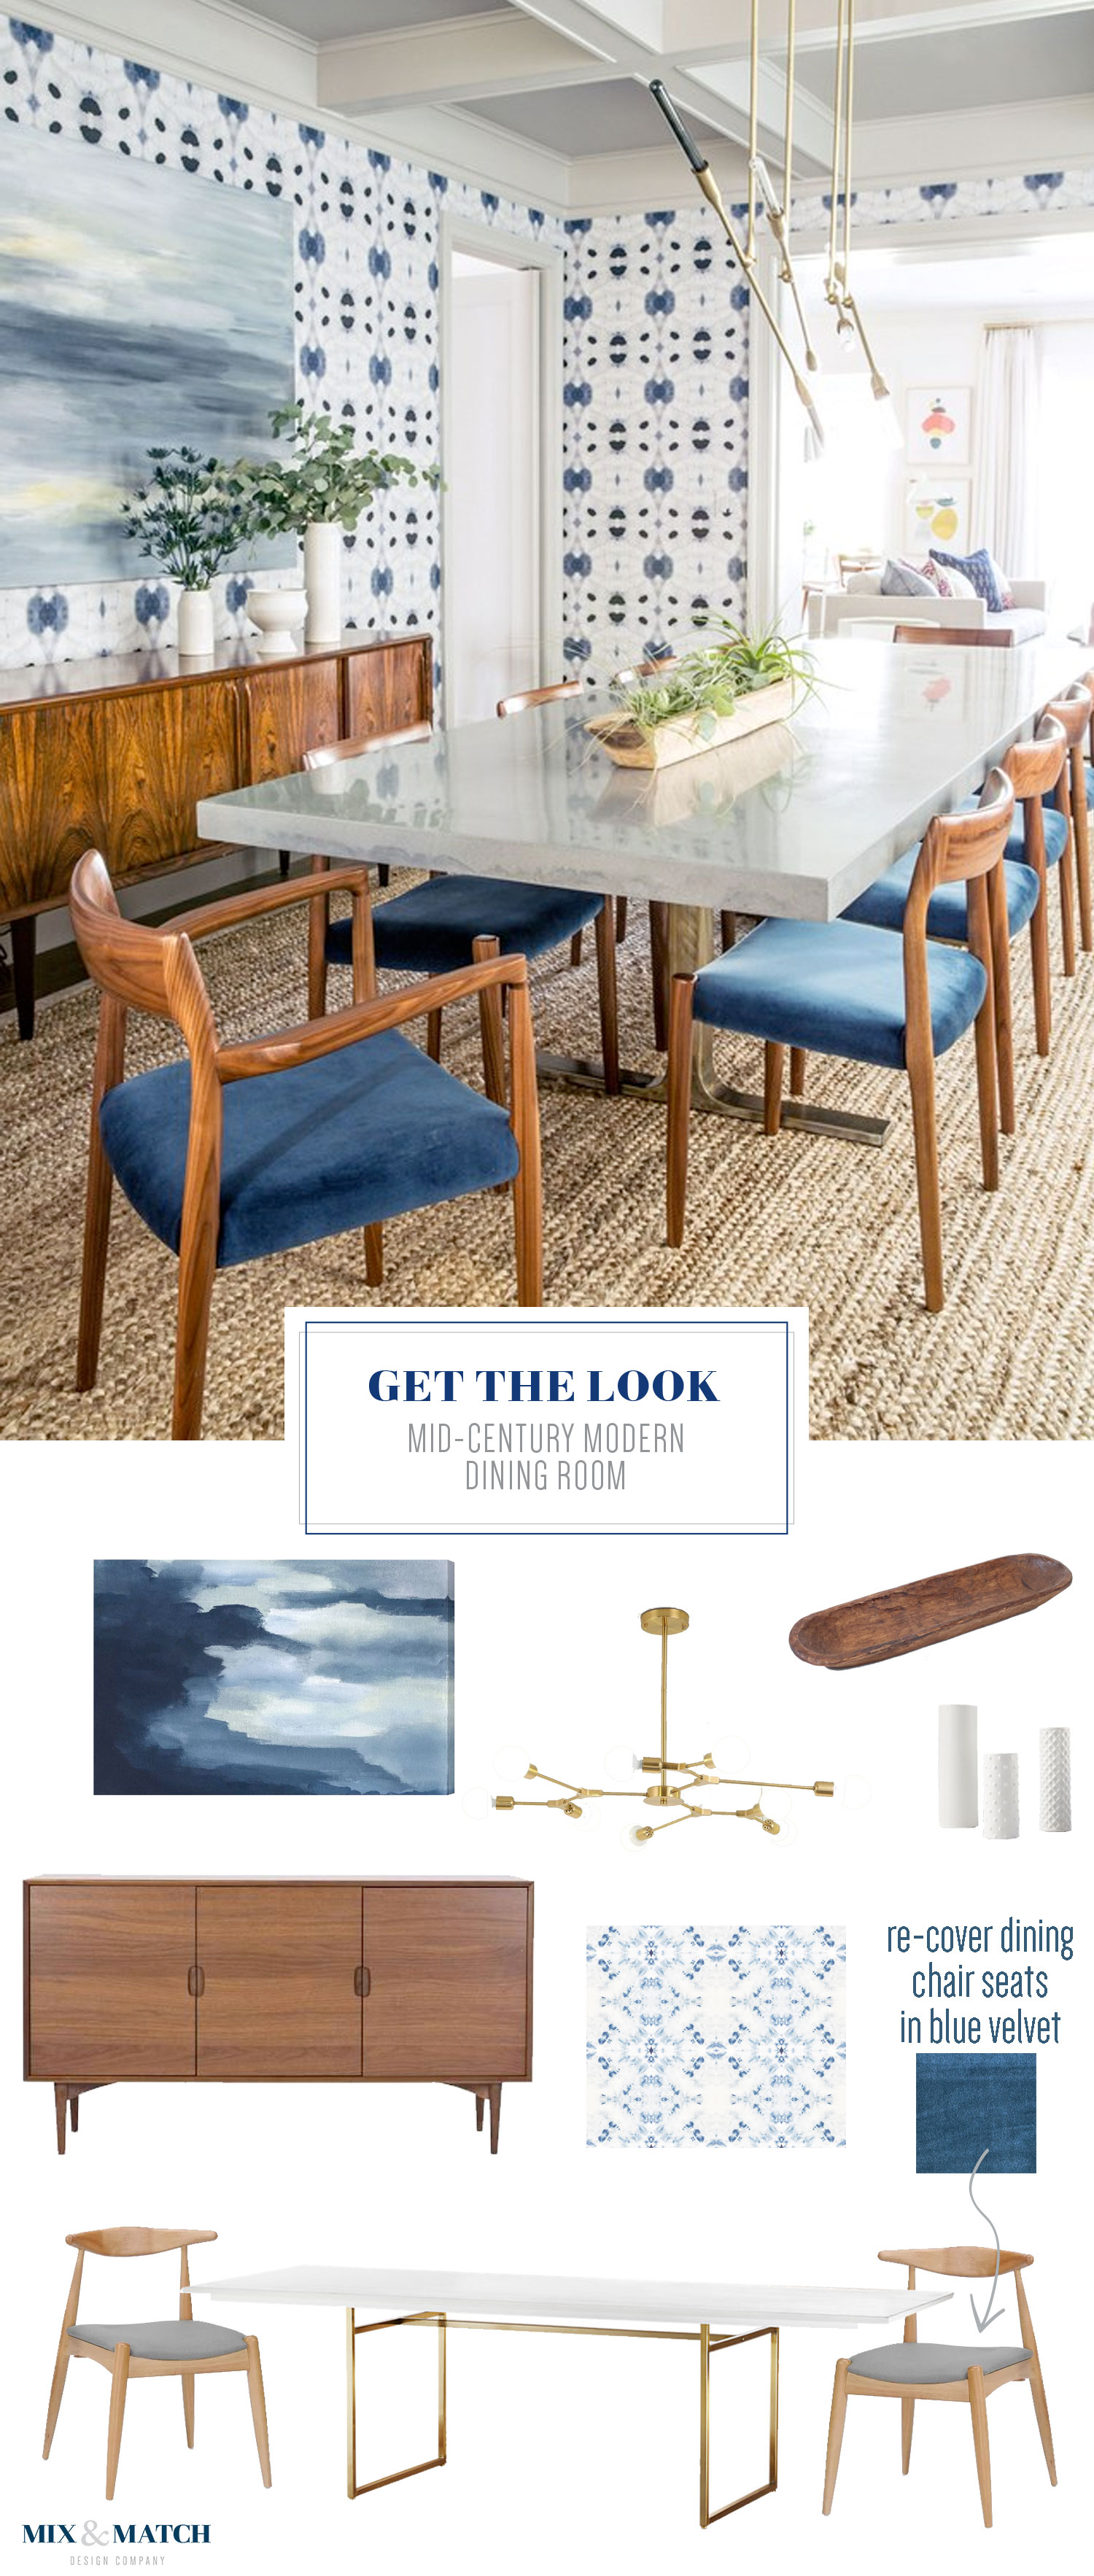 Get the look of this mid-century modern dining room on the blog! I love the indigo shibori style wallpaper and that gorgeous modern brass chandelier!